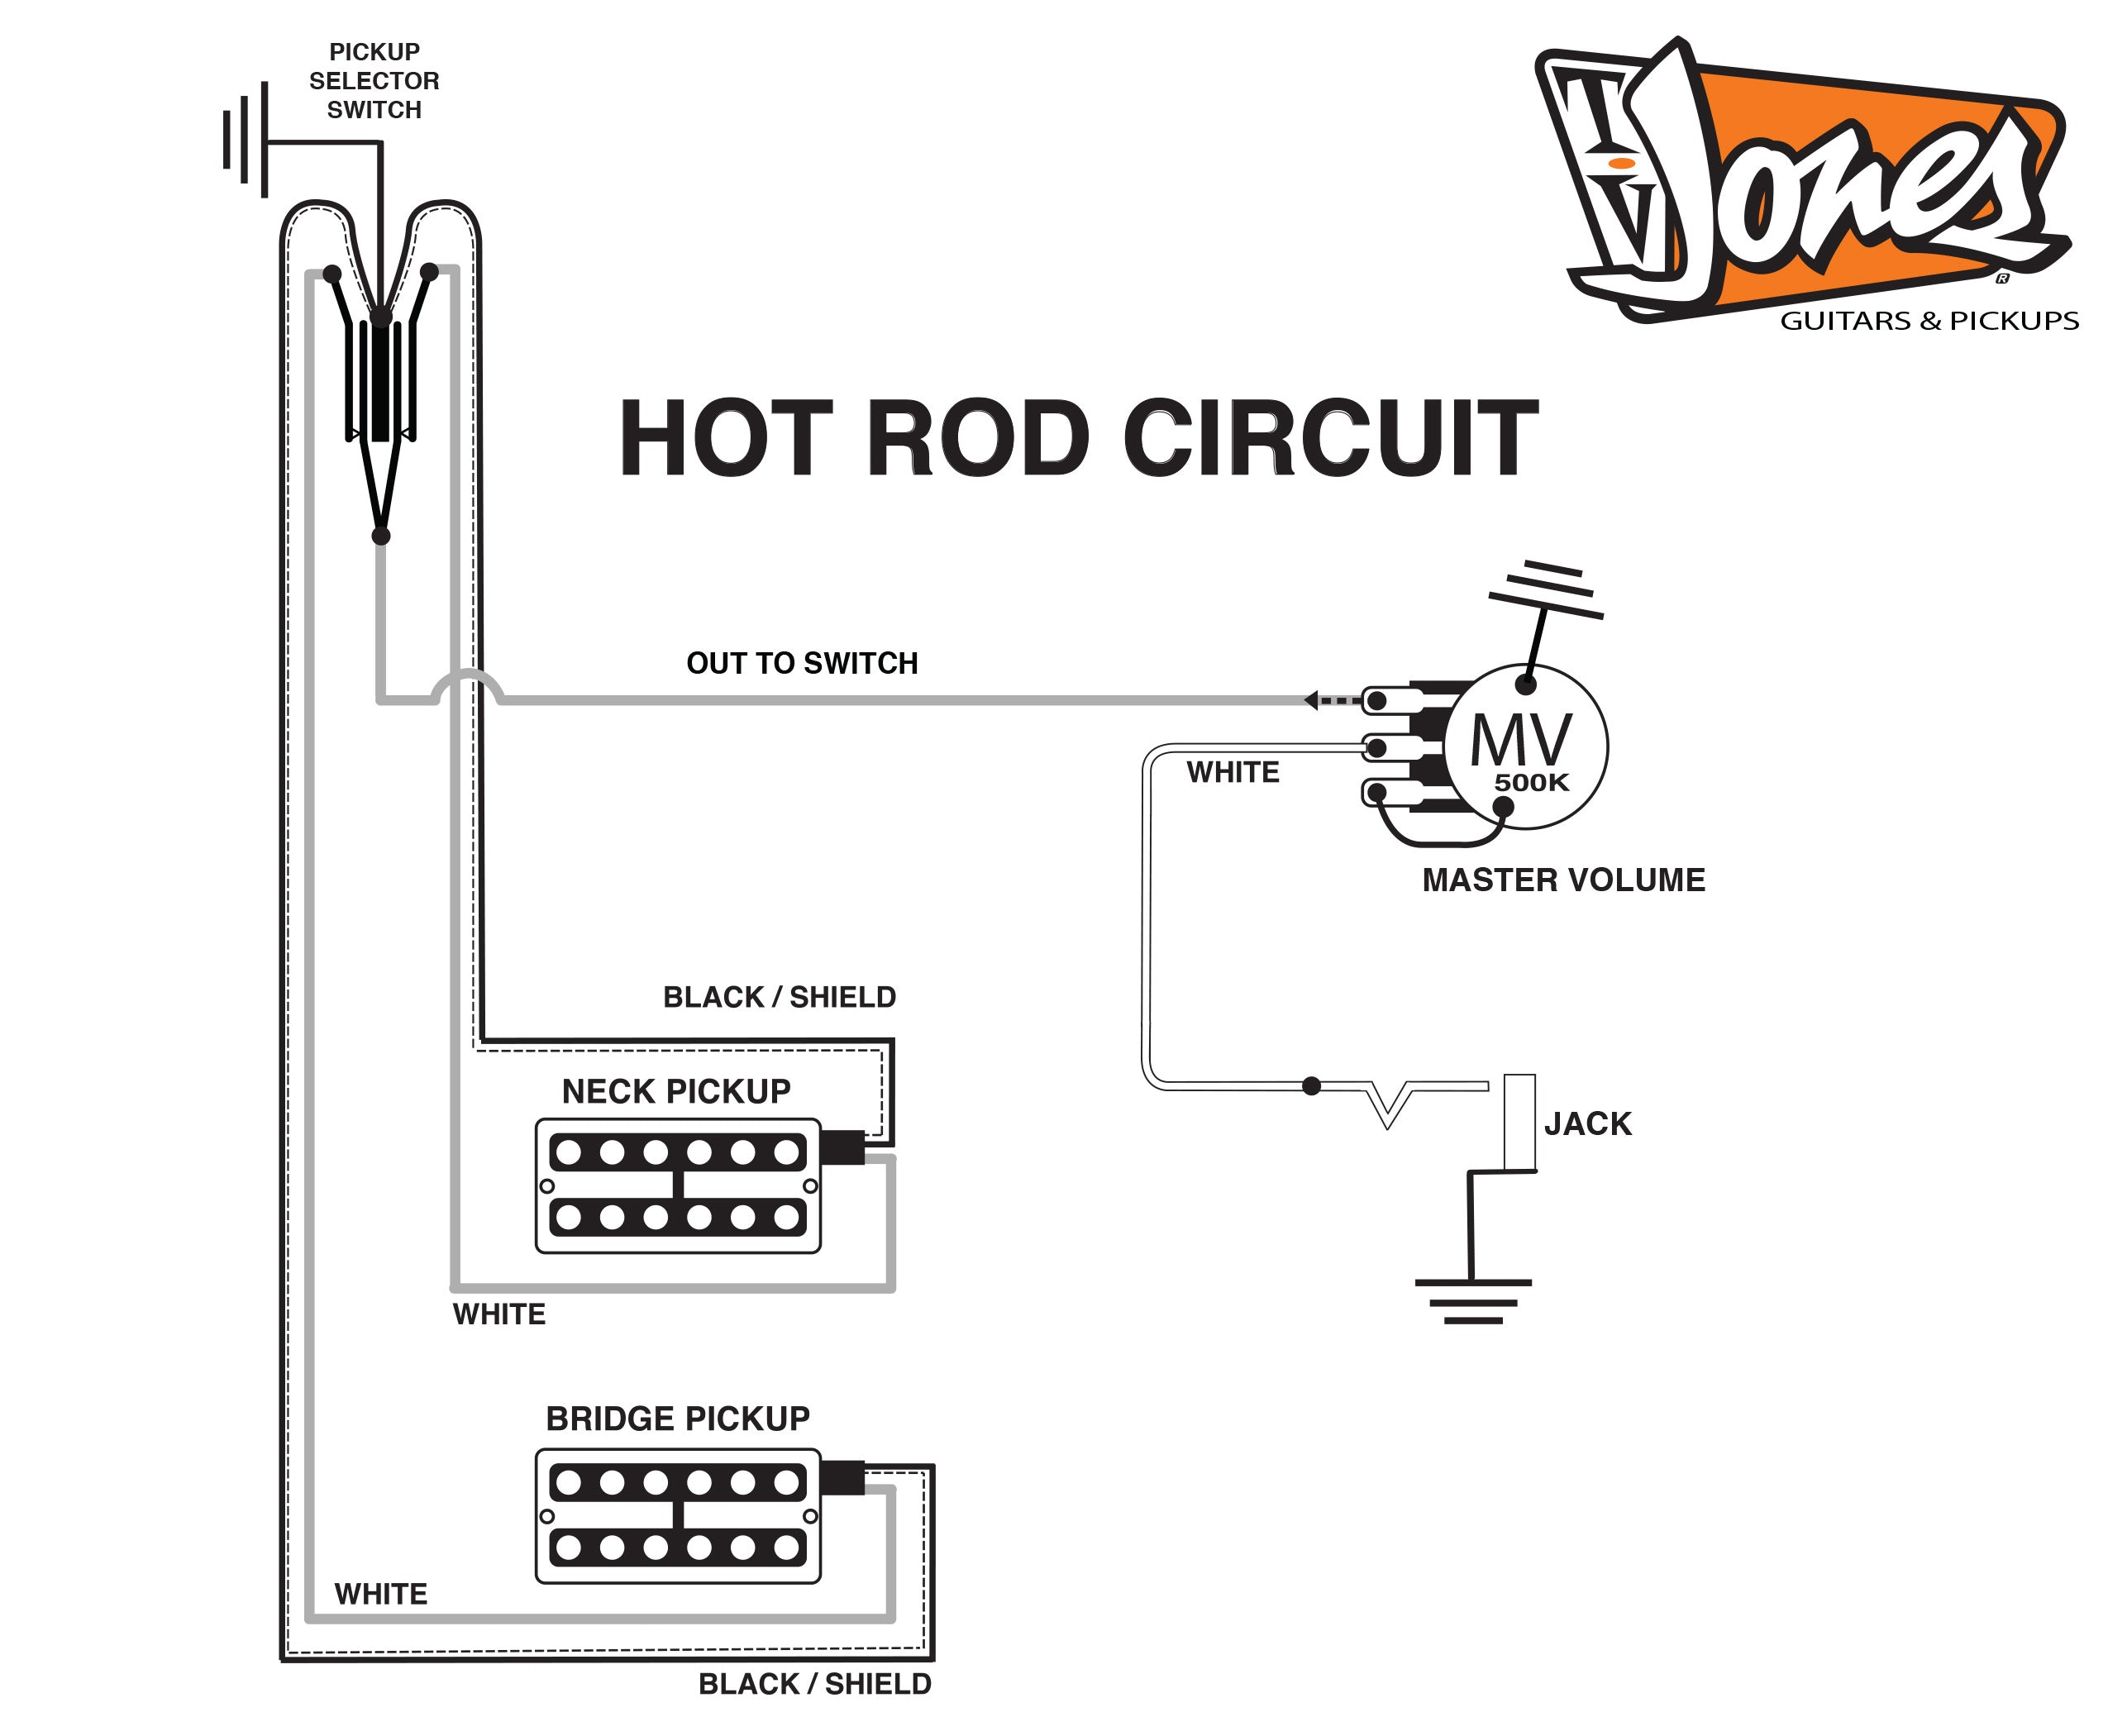 wiring hot rod gretsch diy enthusiasts wiring diagrams u2022 rh okdrywall co schematic wiring dune buggy schematic wiring for house